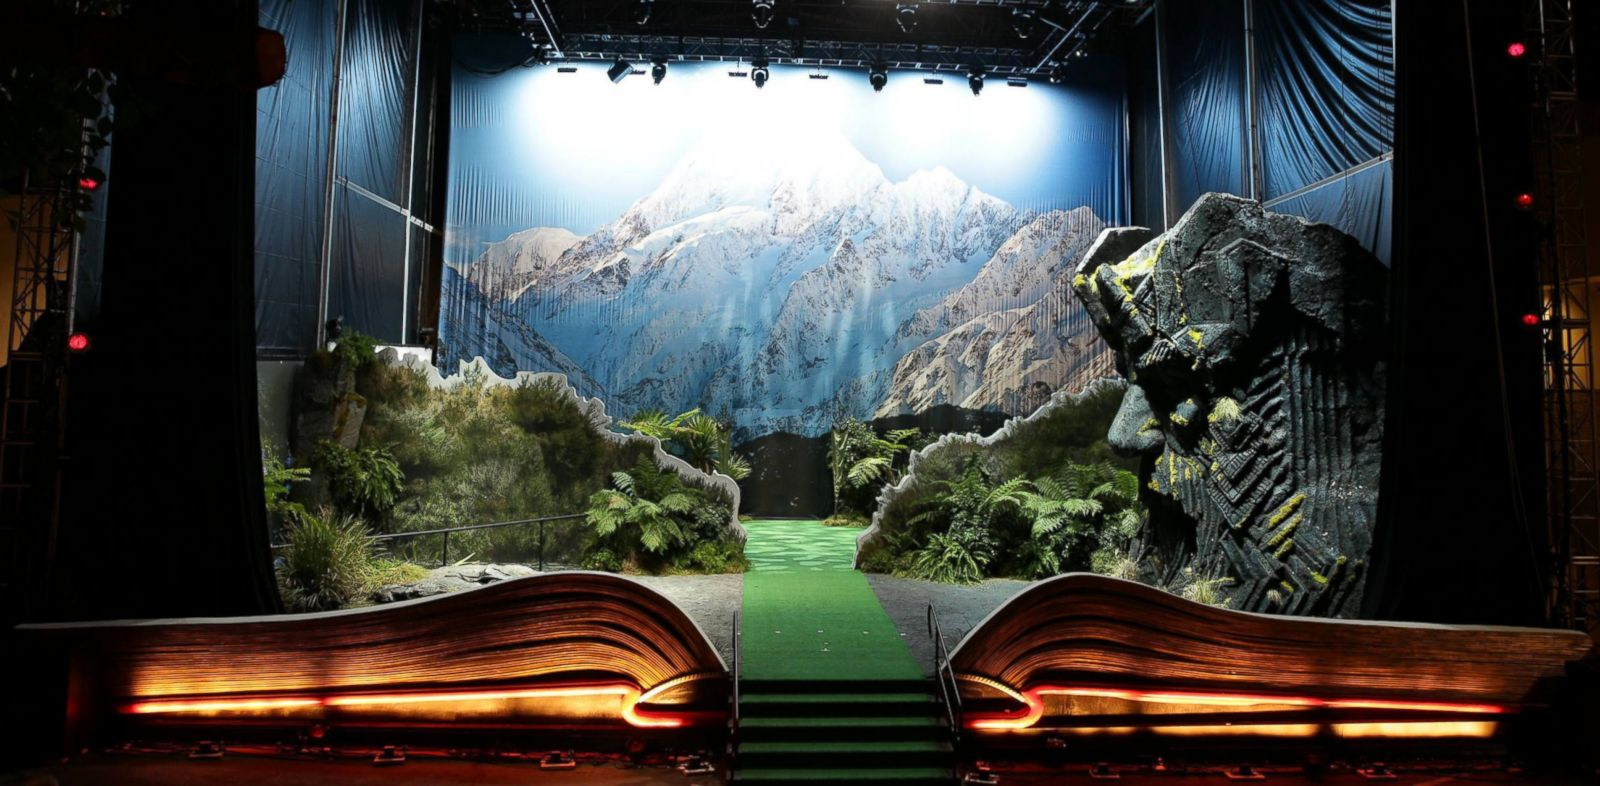 PHOTO: The giant pop-up book of New Zealand, located in Los Angeles.